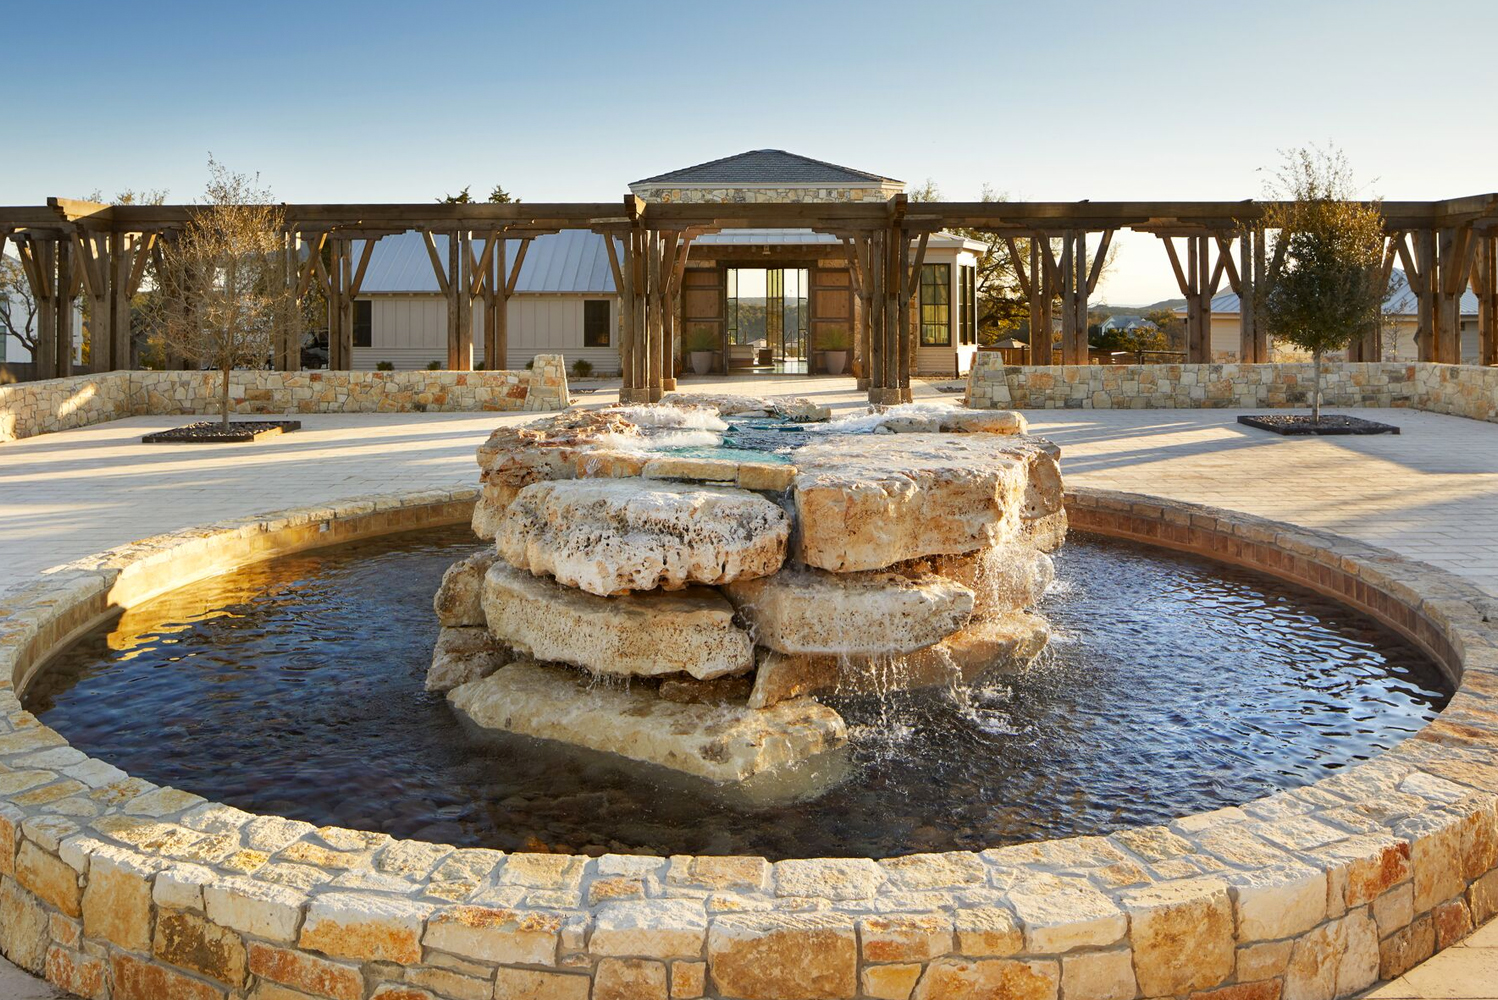 Set on 220 acres of land overlooking Lake Travis, Miraval Austin is the brand's second wellness resort.